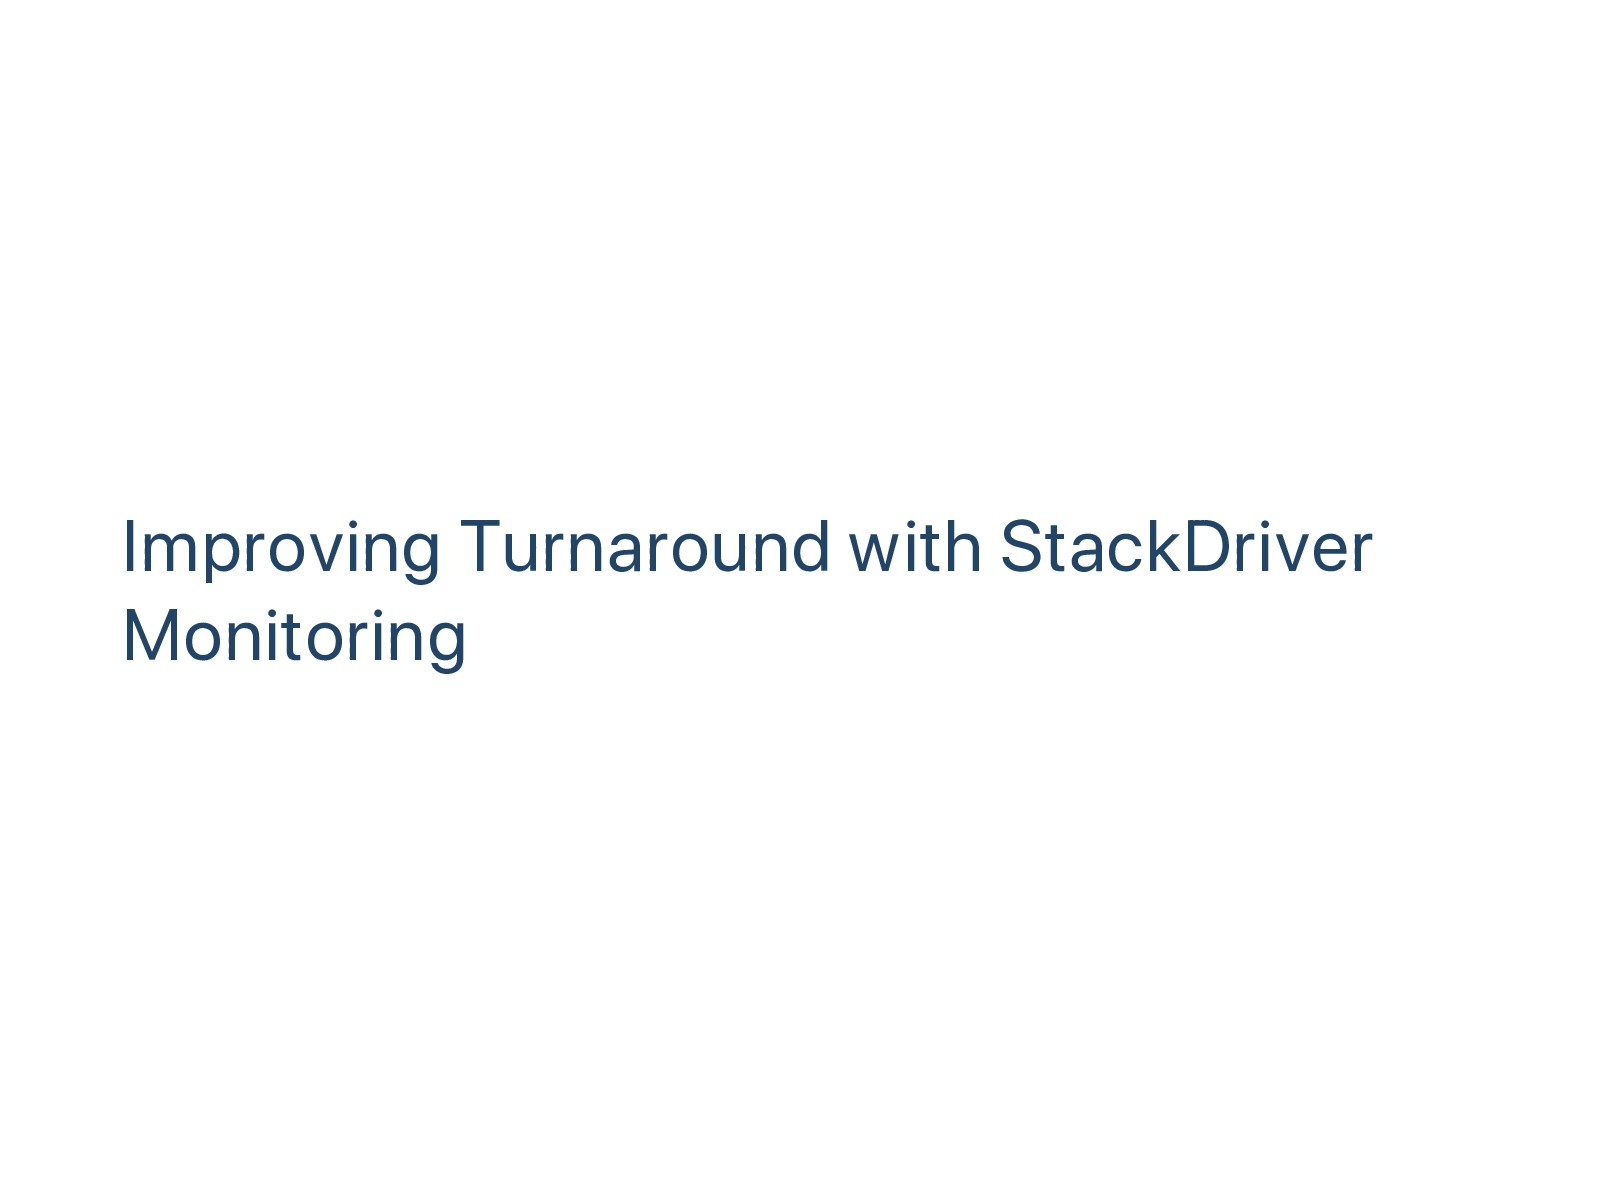 Improving Turnaround with StackDriver Monitoring